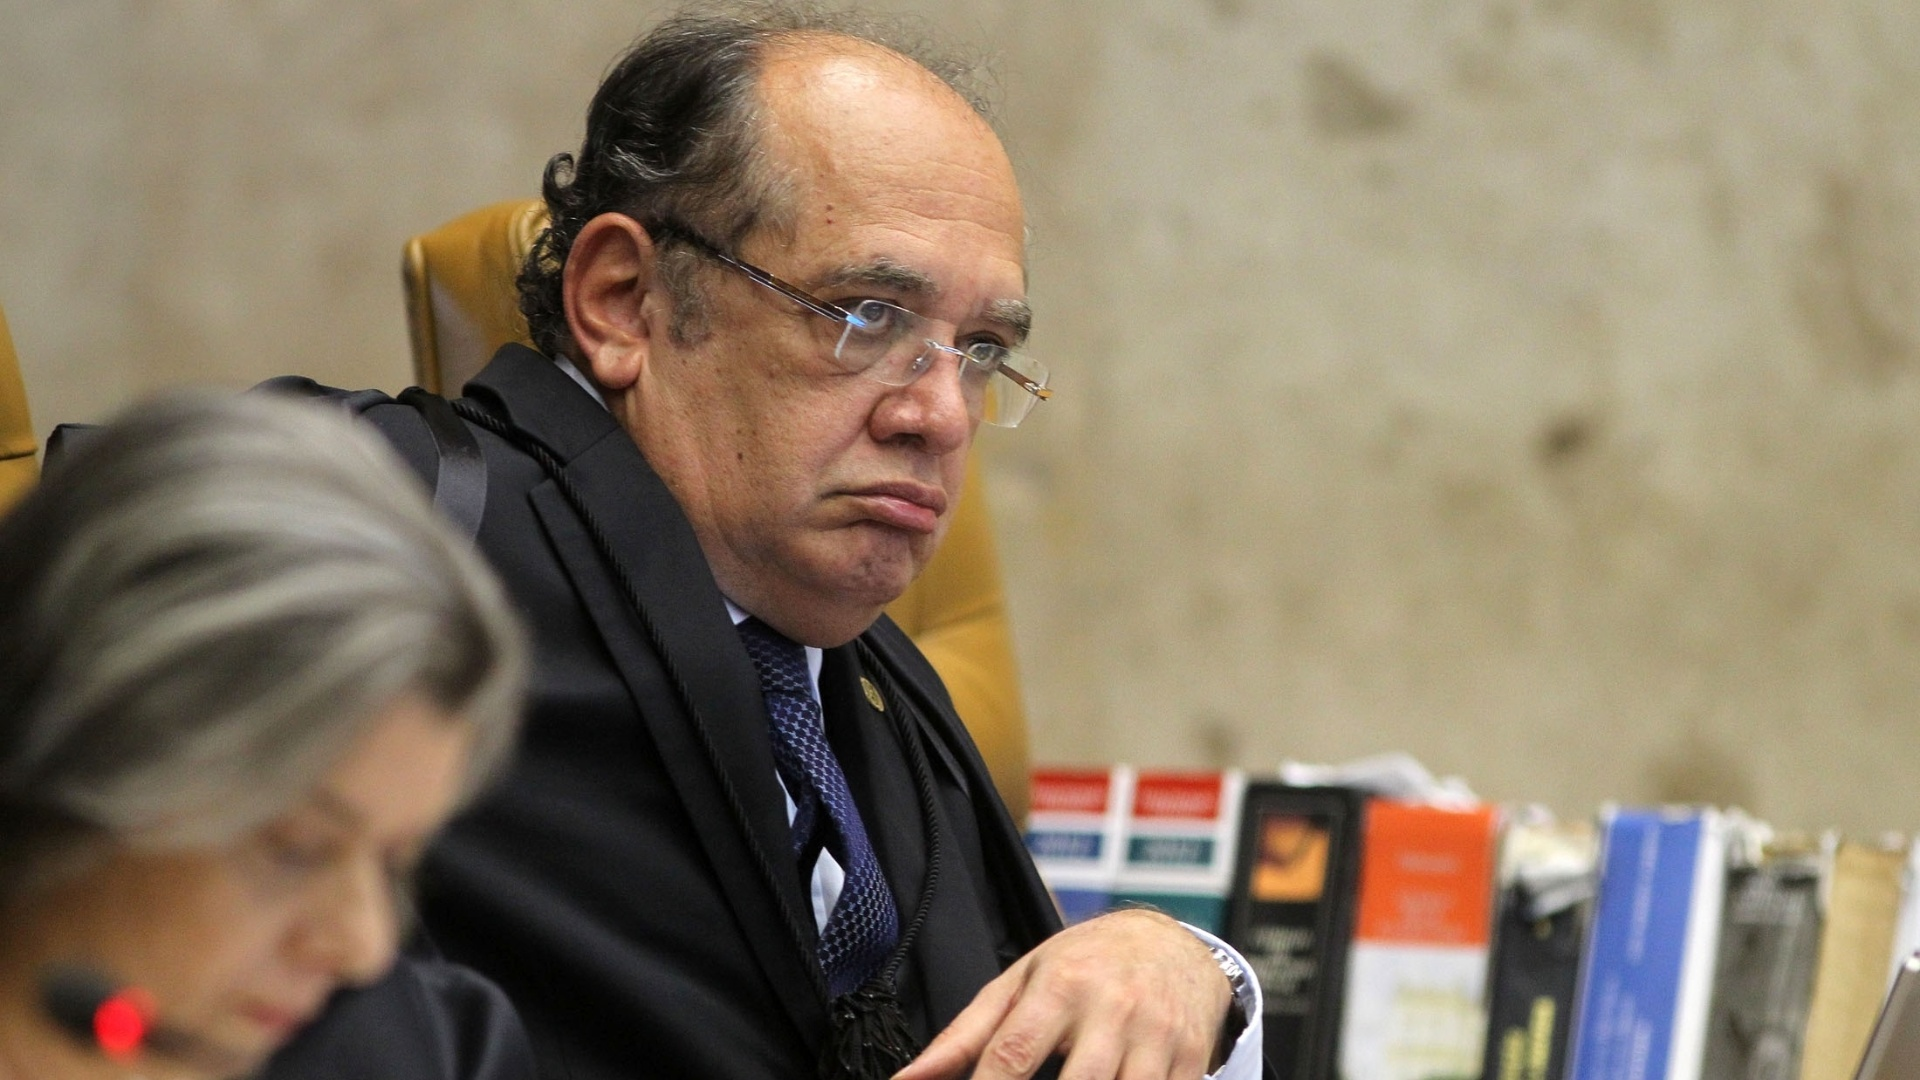 10.dez.2012 - O ministro do STF Gilmar Mendes (ao fundo) participa de sesso de julgamento do mensalo na qual  discutida se cabe ao STF determinar a perda de mandato dos deputados condenados no processo